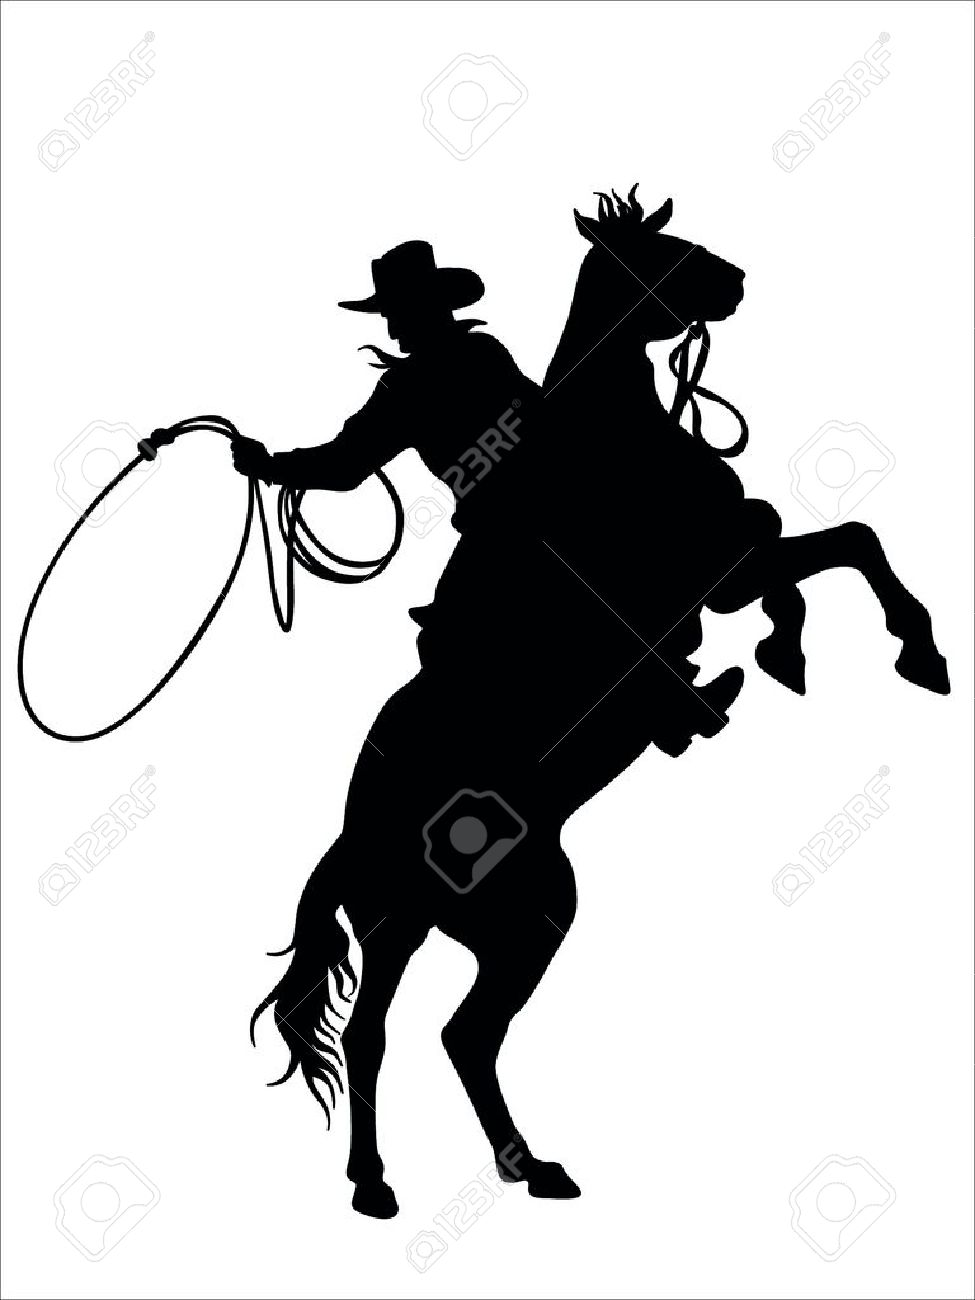 Ranch clipart rodeo Clipart Ranch Clipart Rodeo Rodeo